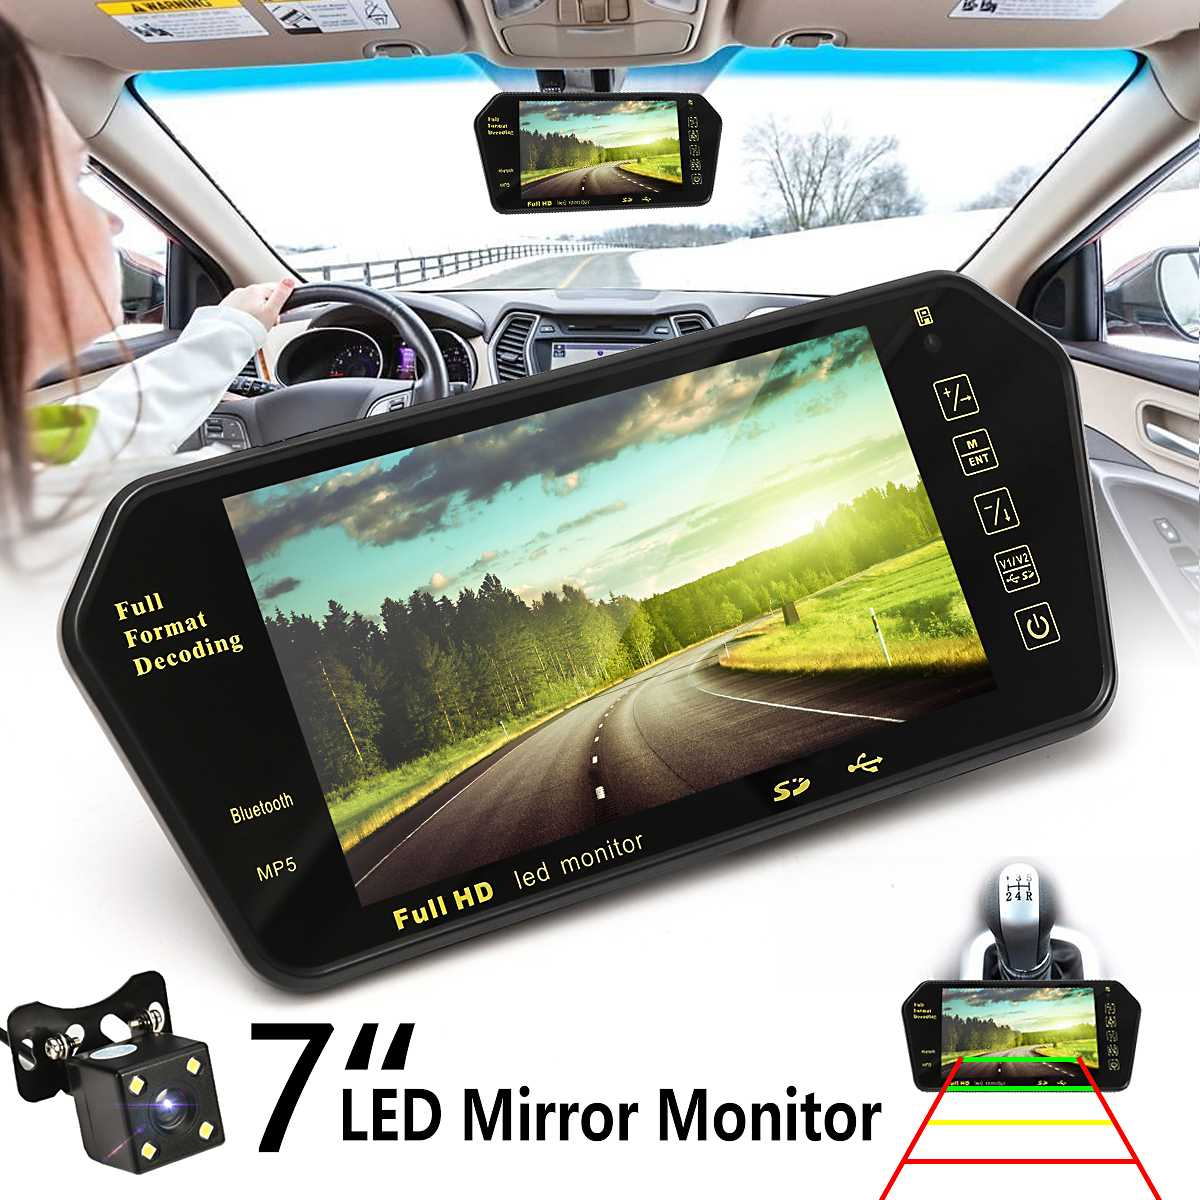 7inch LCD MP5 bluetooth Car Rear View Parking Mirror Monitor Reversing Car Camera Wireless RCA View Video Receiver Transmitter